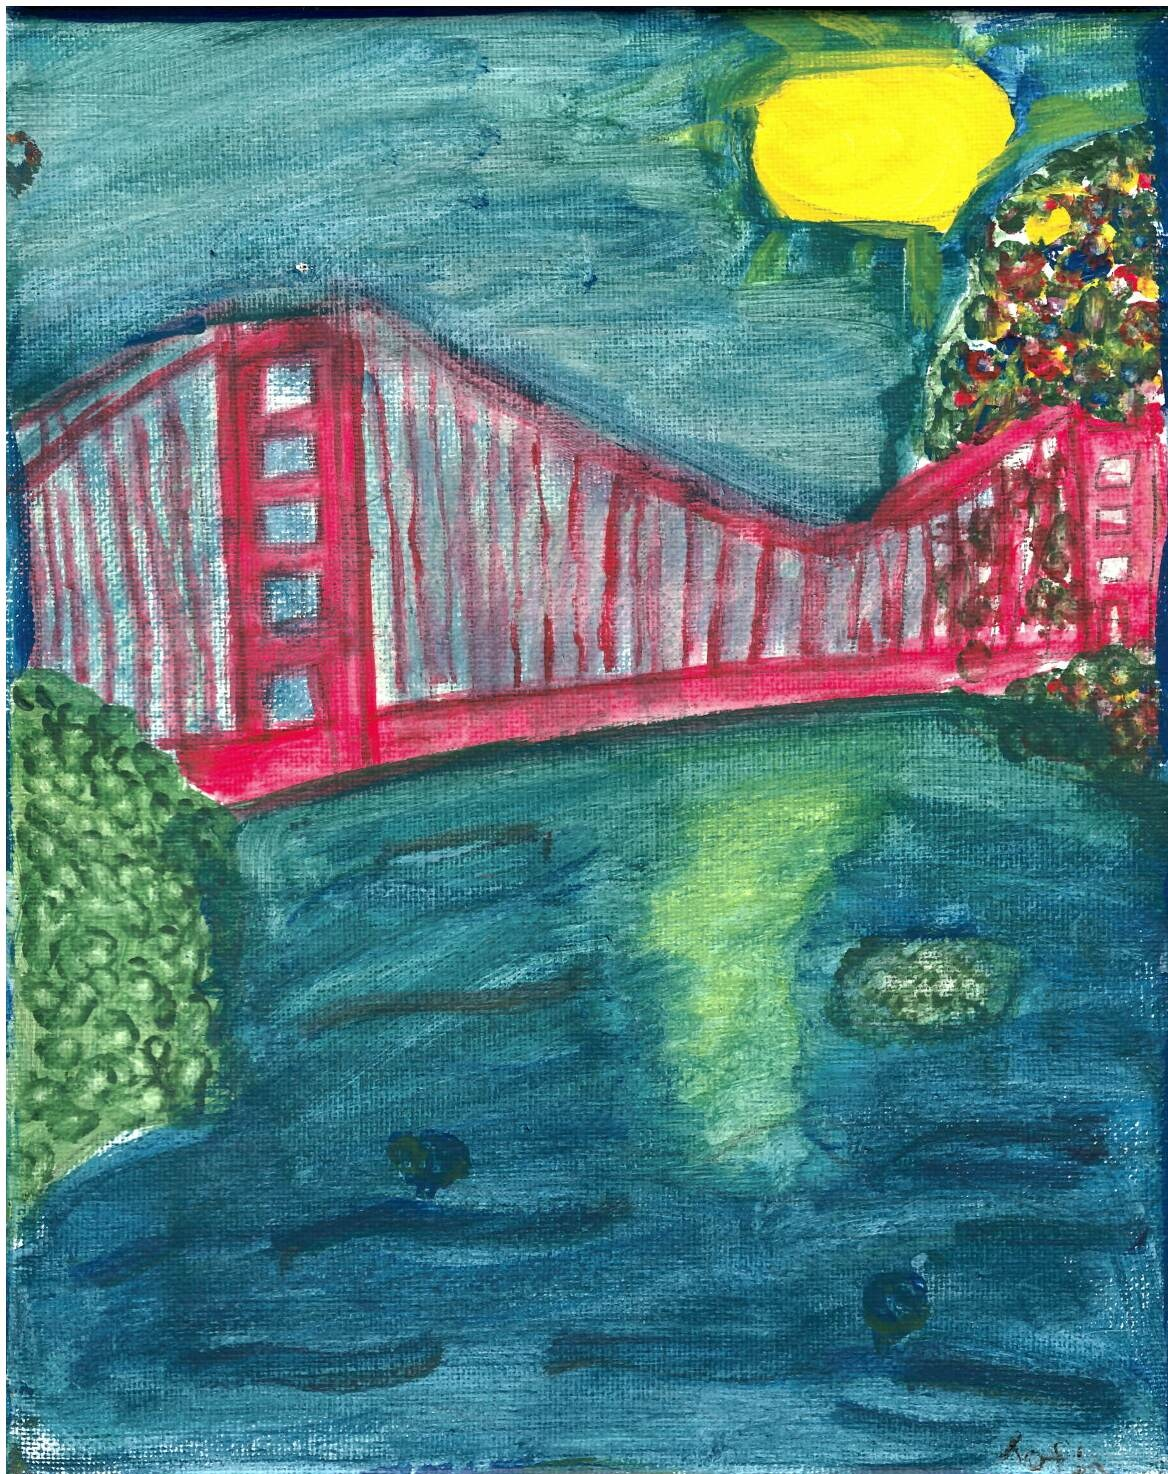 Sofia C., Age 12, receives an honorable mention for her work 'The Golden Gate', done on canvas.